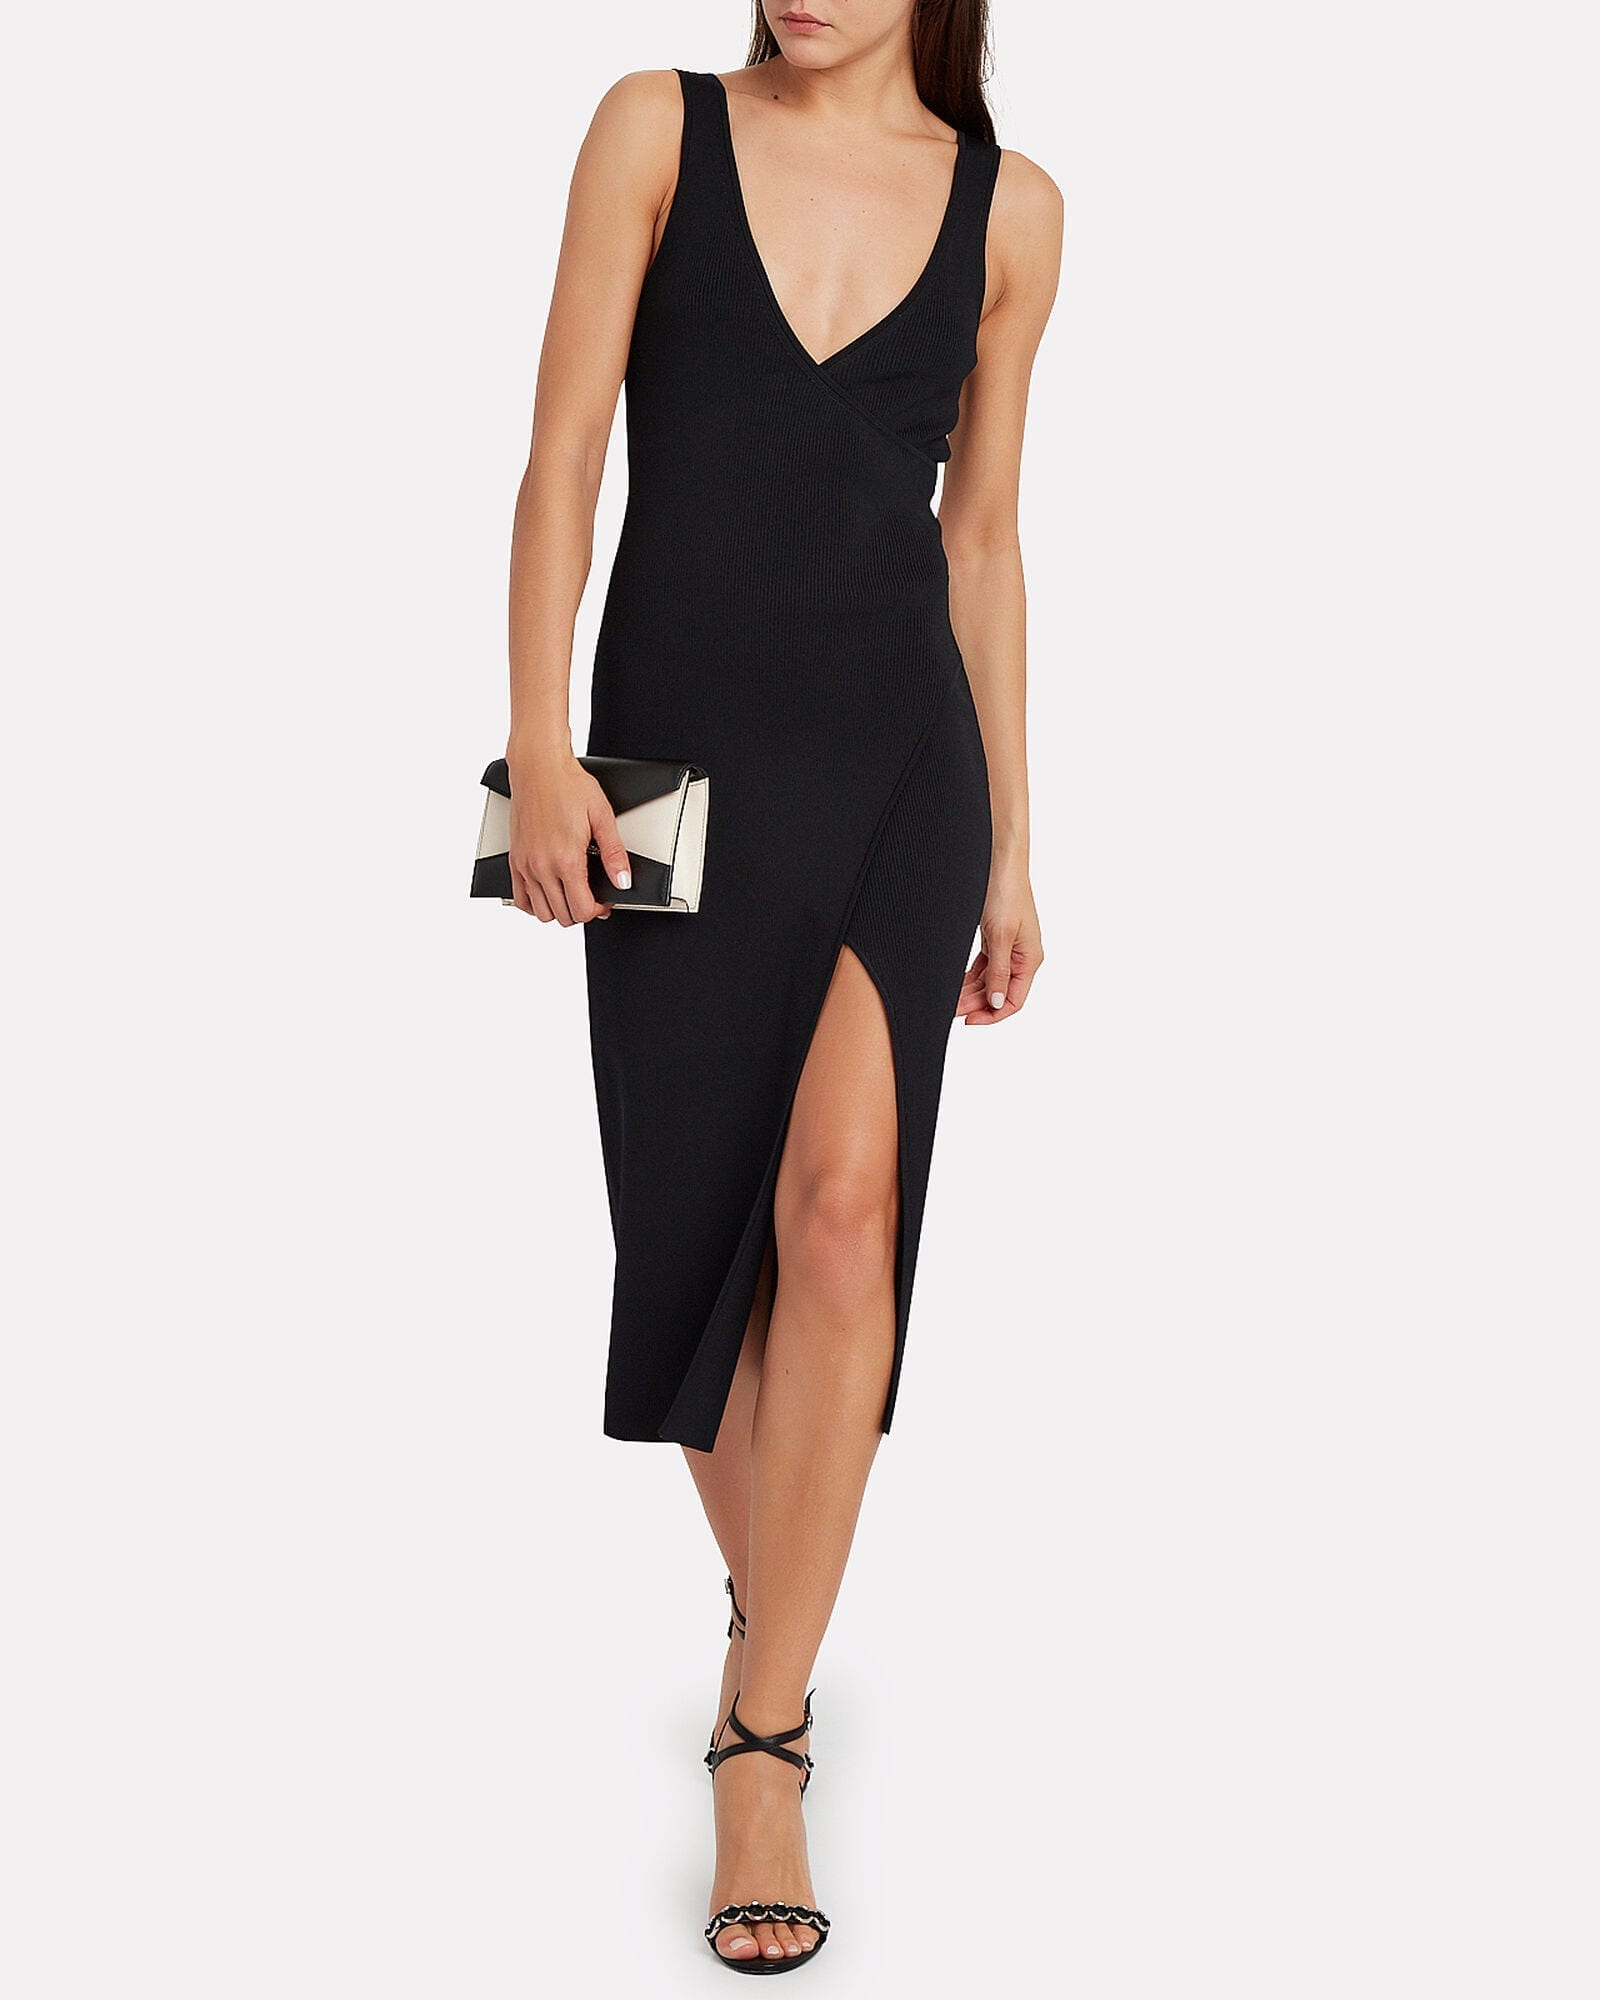 JONATHAN SIMKHAI Rib Knit Wrap Dress